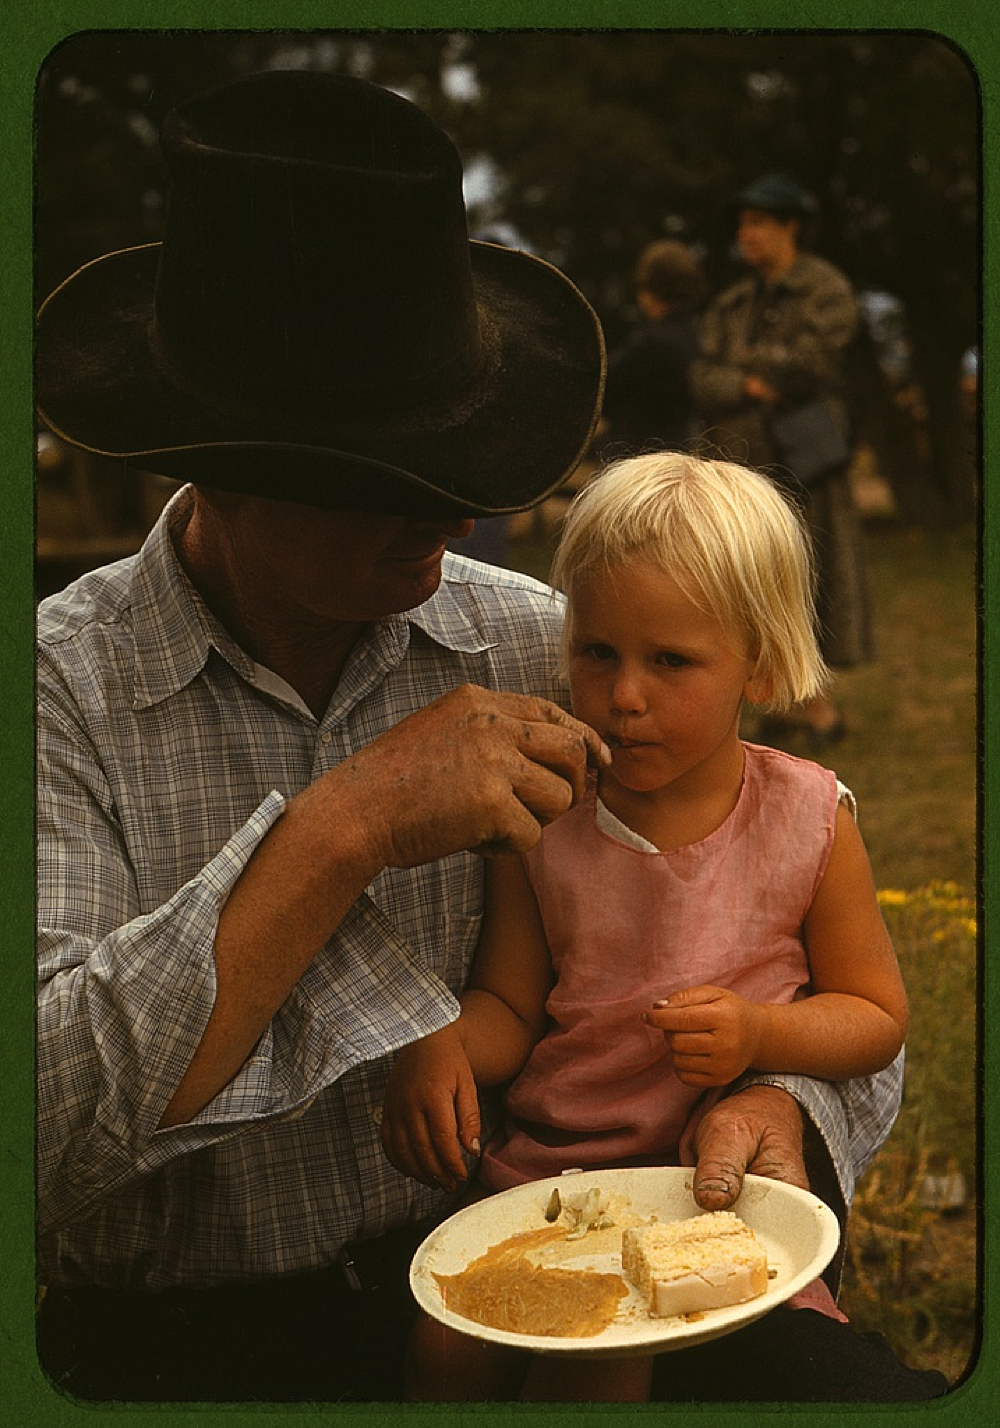 Homesteader feeding his daughter at the Pie Town